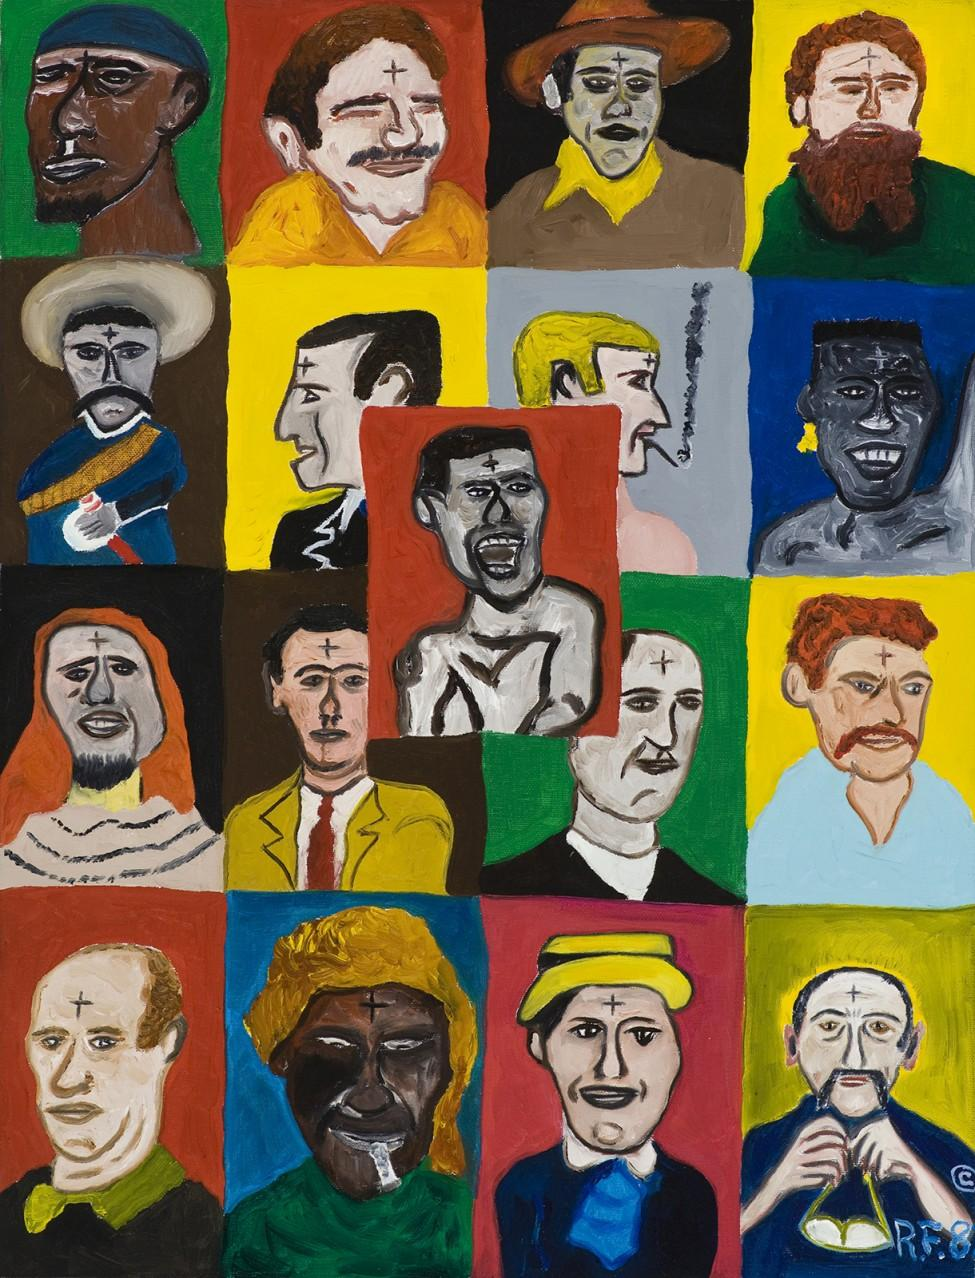 Colorfully painted four-by-four grid of men's portraits, each with a small cross on the forehead